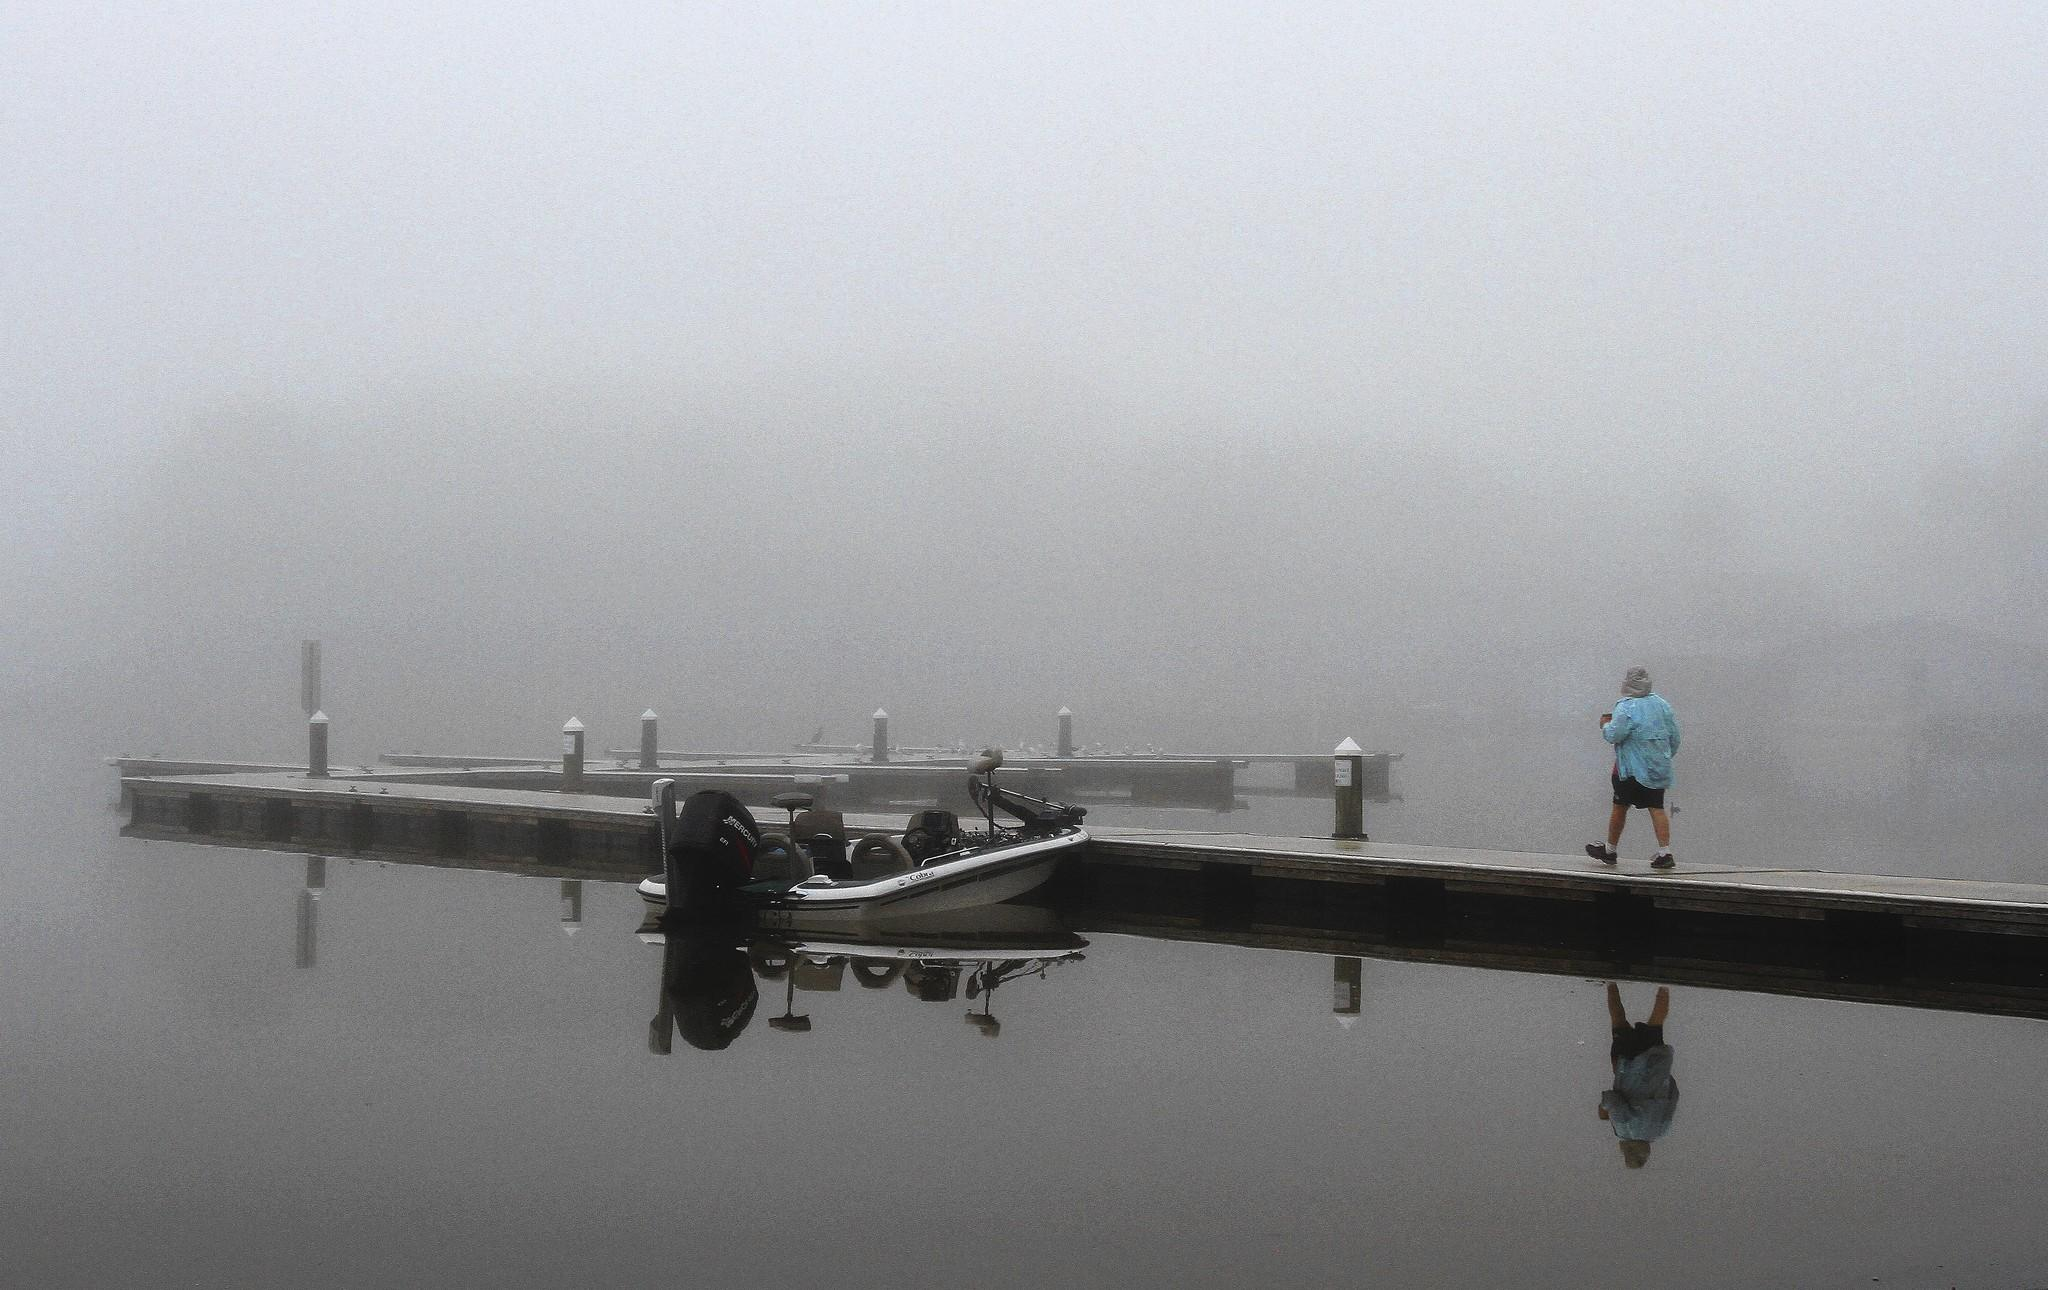 A fisherman prepares to motor into the fog on Lake Dora in Mount Dora, Fl. on Tuesday, February 4, 2014.